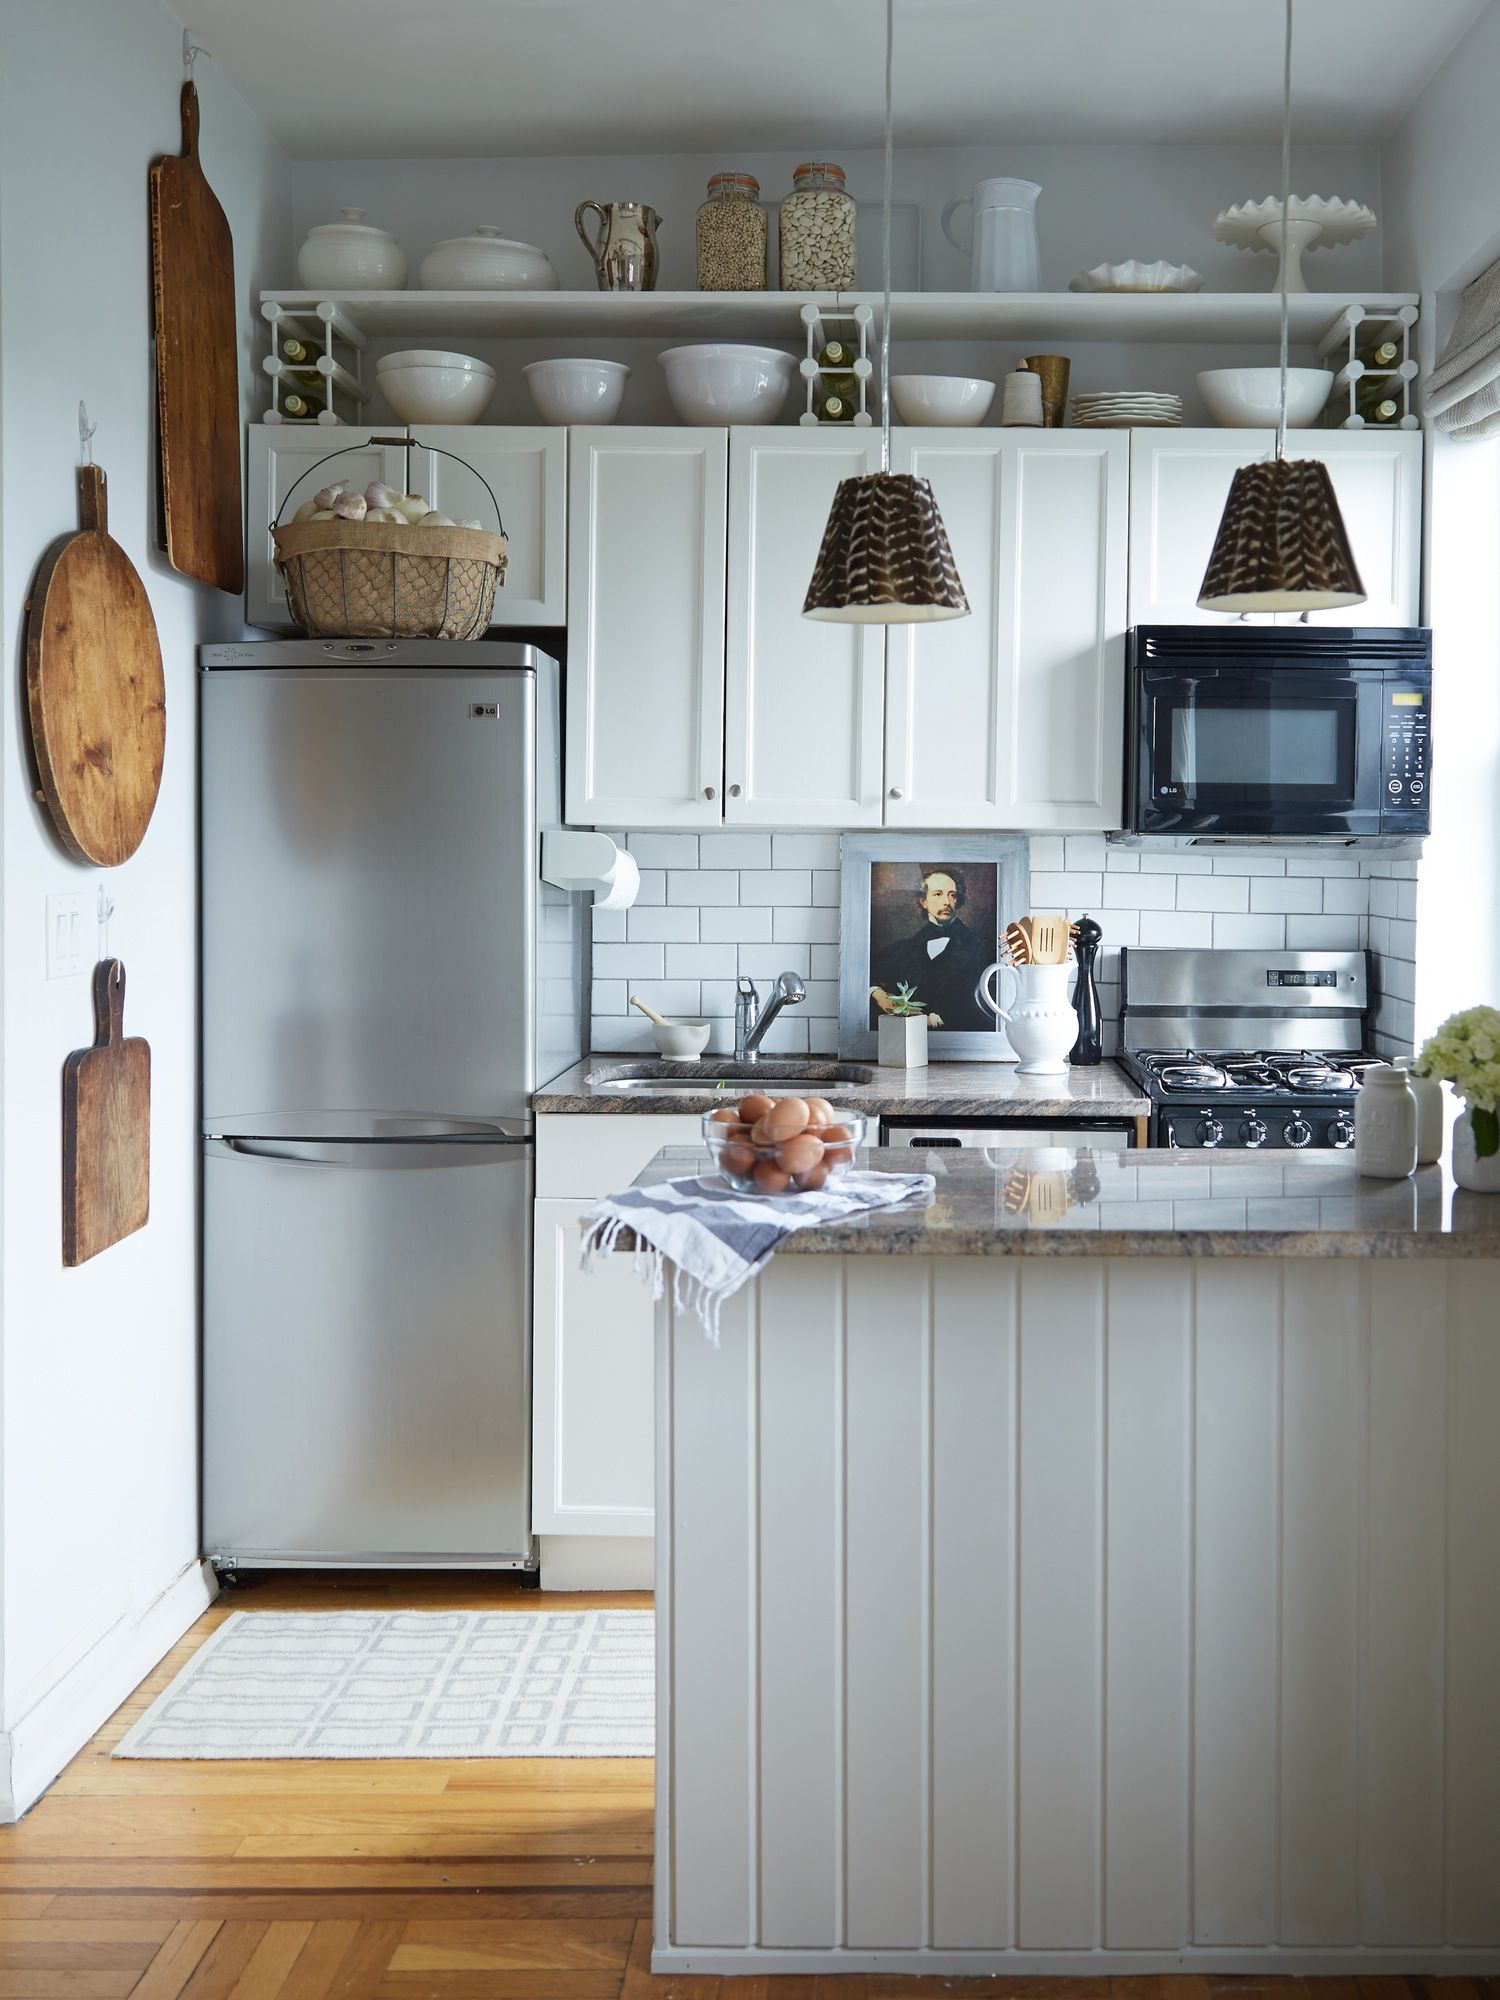 9 Perfect Places to Put Shelves in a Small Space | Small spaces ...